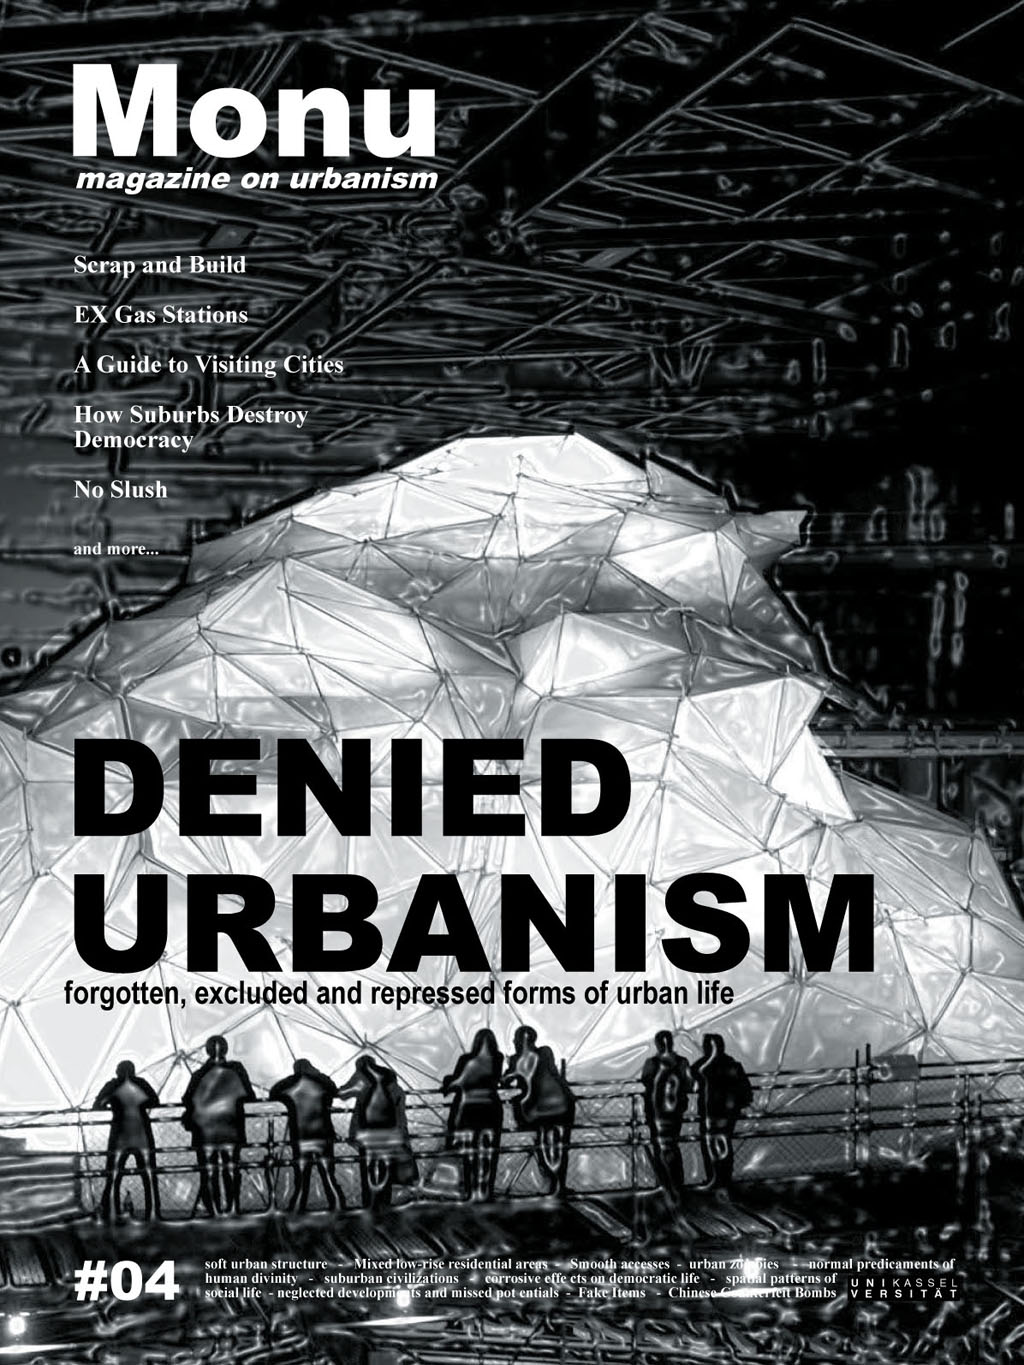 MONU magazine on urbanism 4 – Denied Urbanism